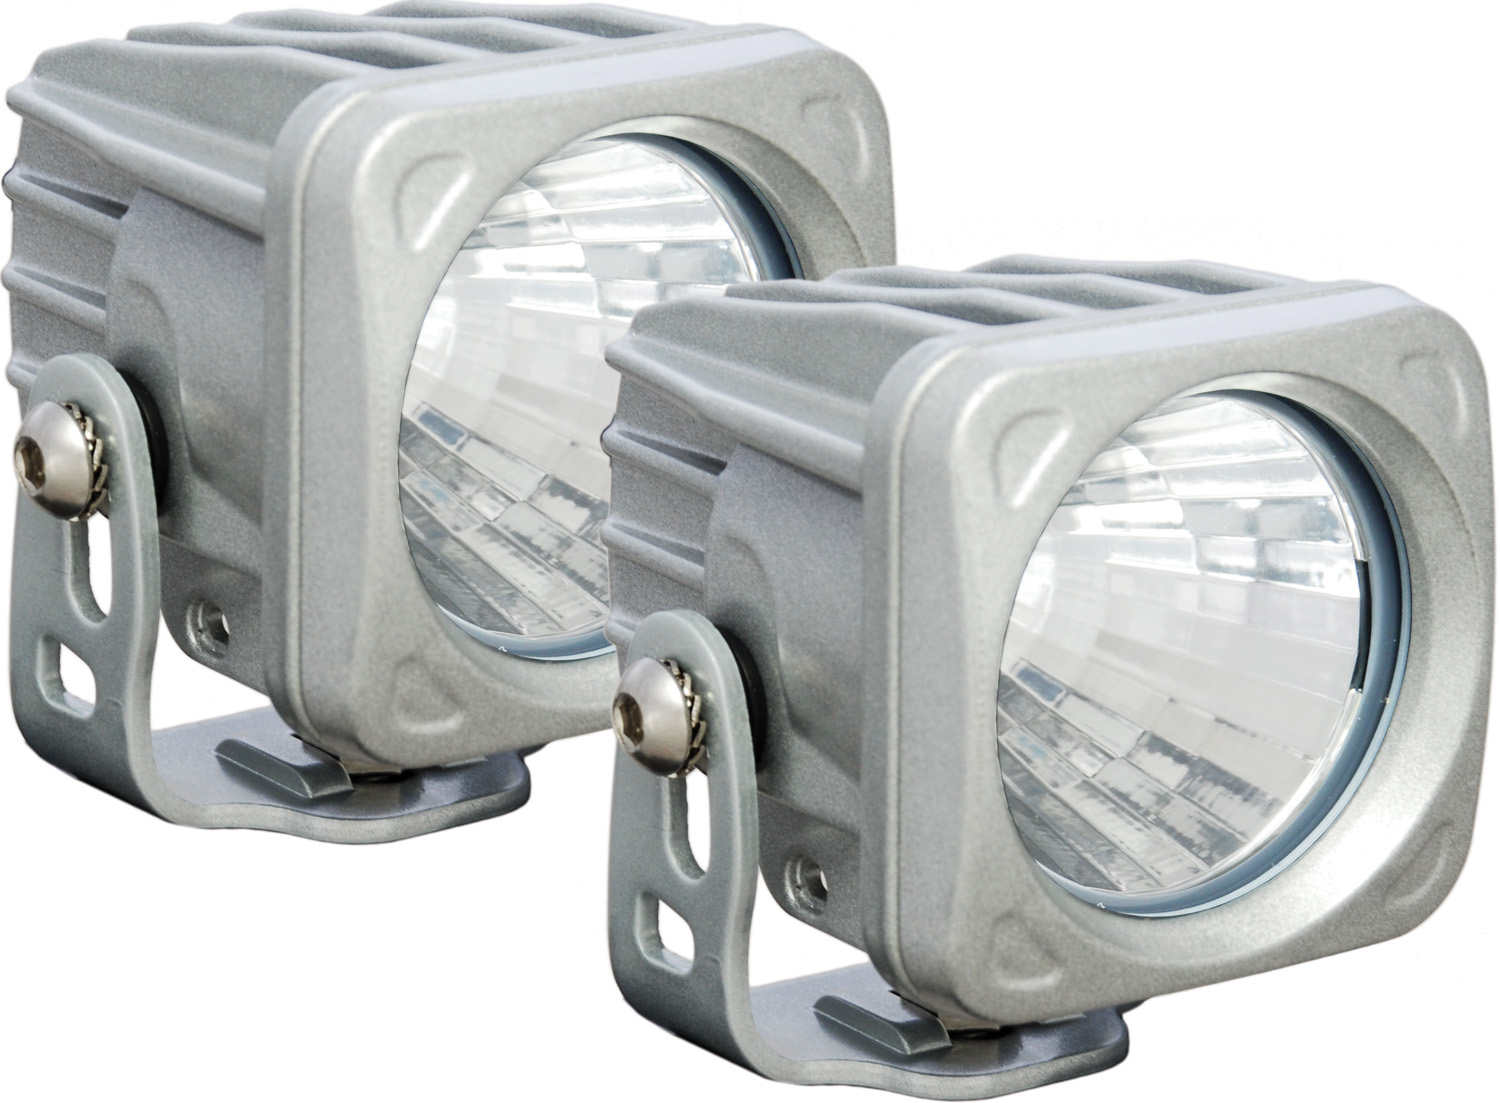 OPTIMUS SQUARE SILVER 1 10W LED 20° MEDIUM KIT OF 2 LIGHTS